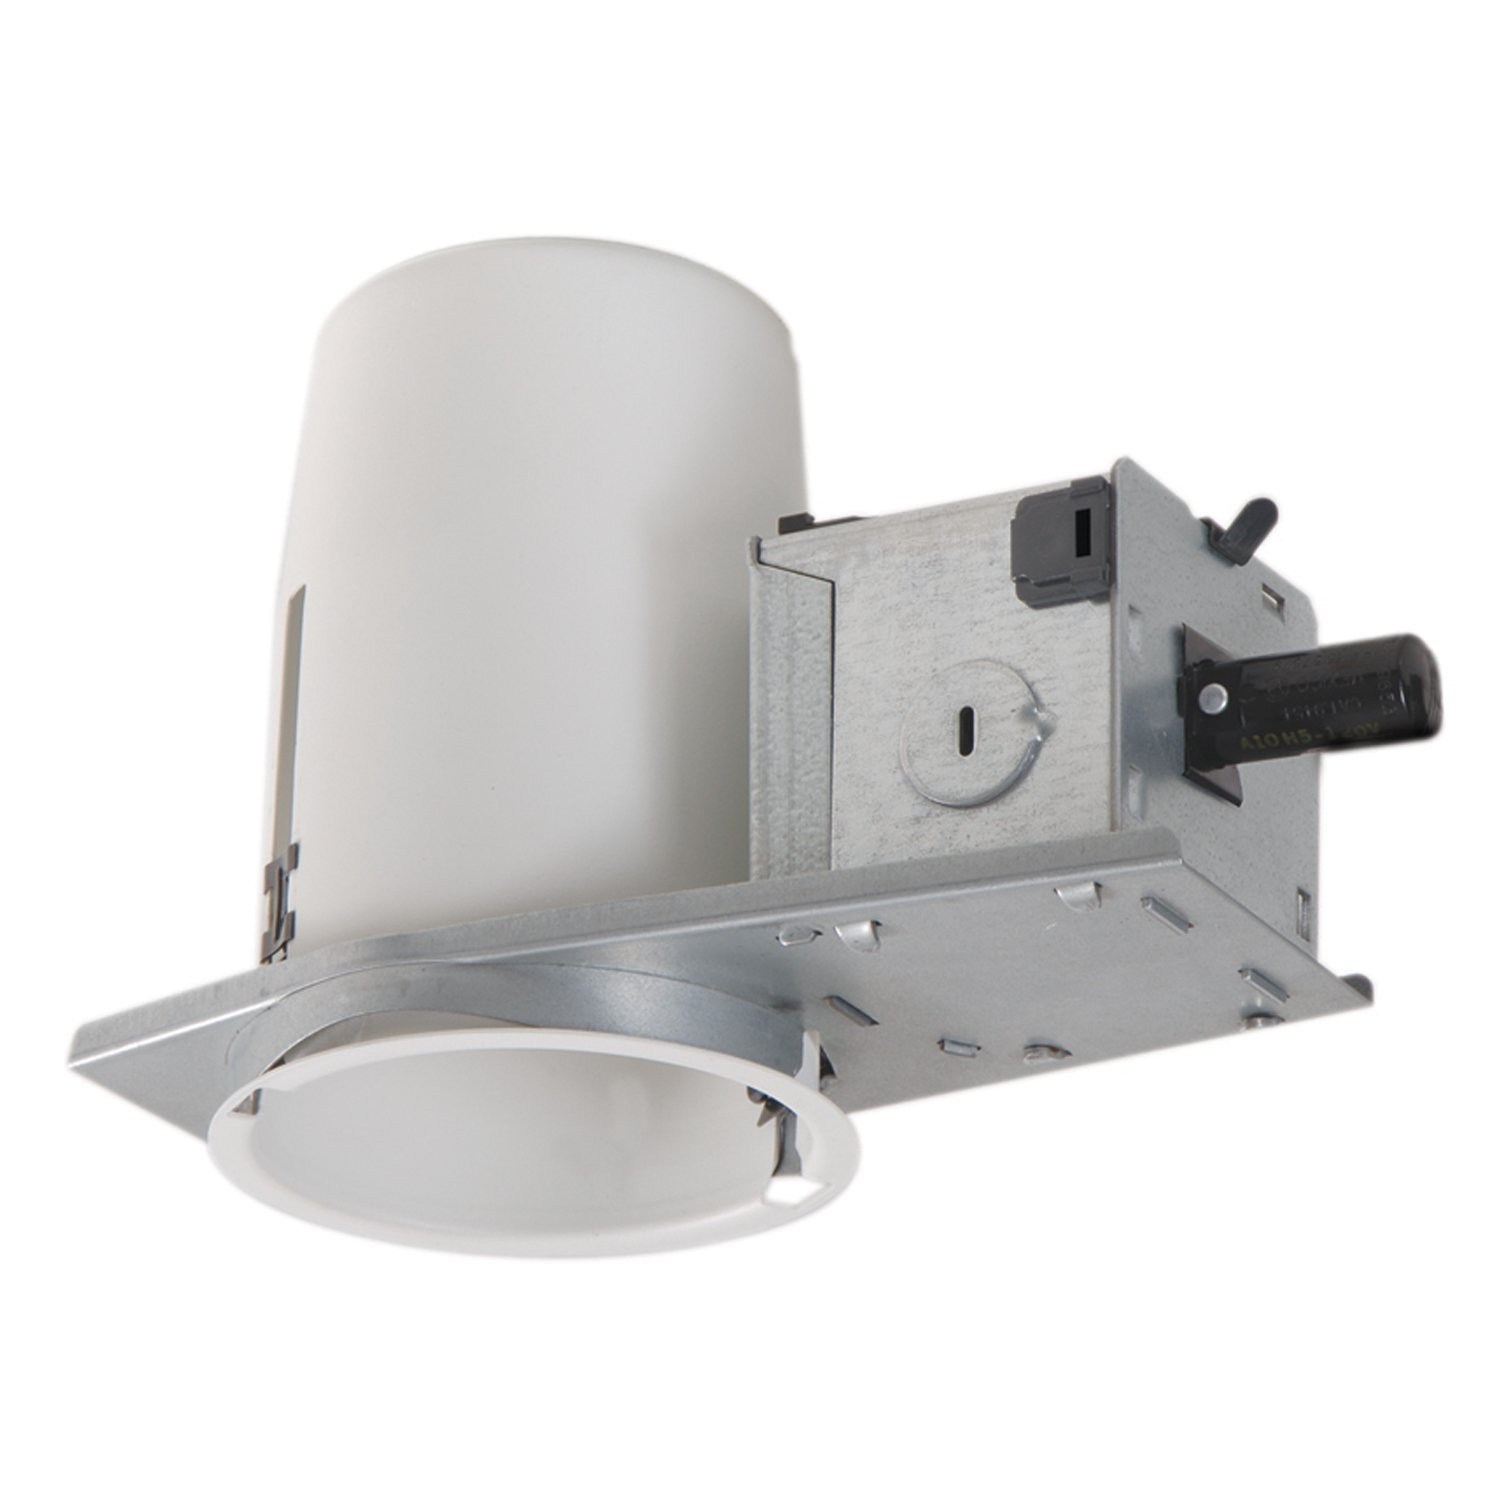 Halo recessed h36rtat 3 inch housing non ic air tite shallow ceiling halo recessed h36rtat 3 inch housing non ic air tite shallow ceiling 120 volt line voltage recessed light fixture housings amazon audiocablefo